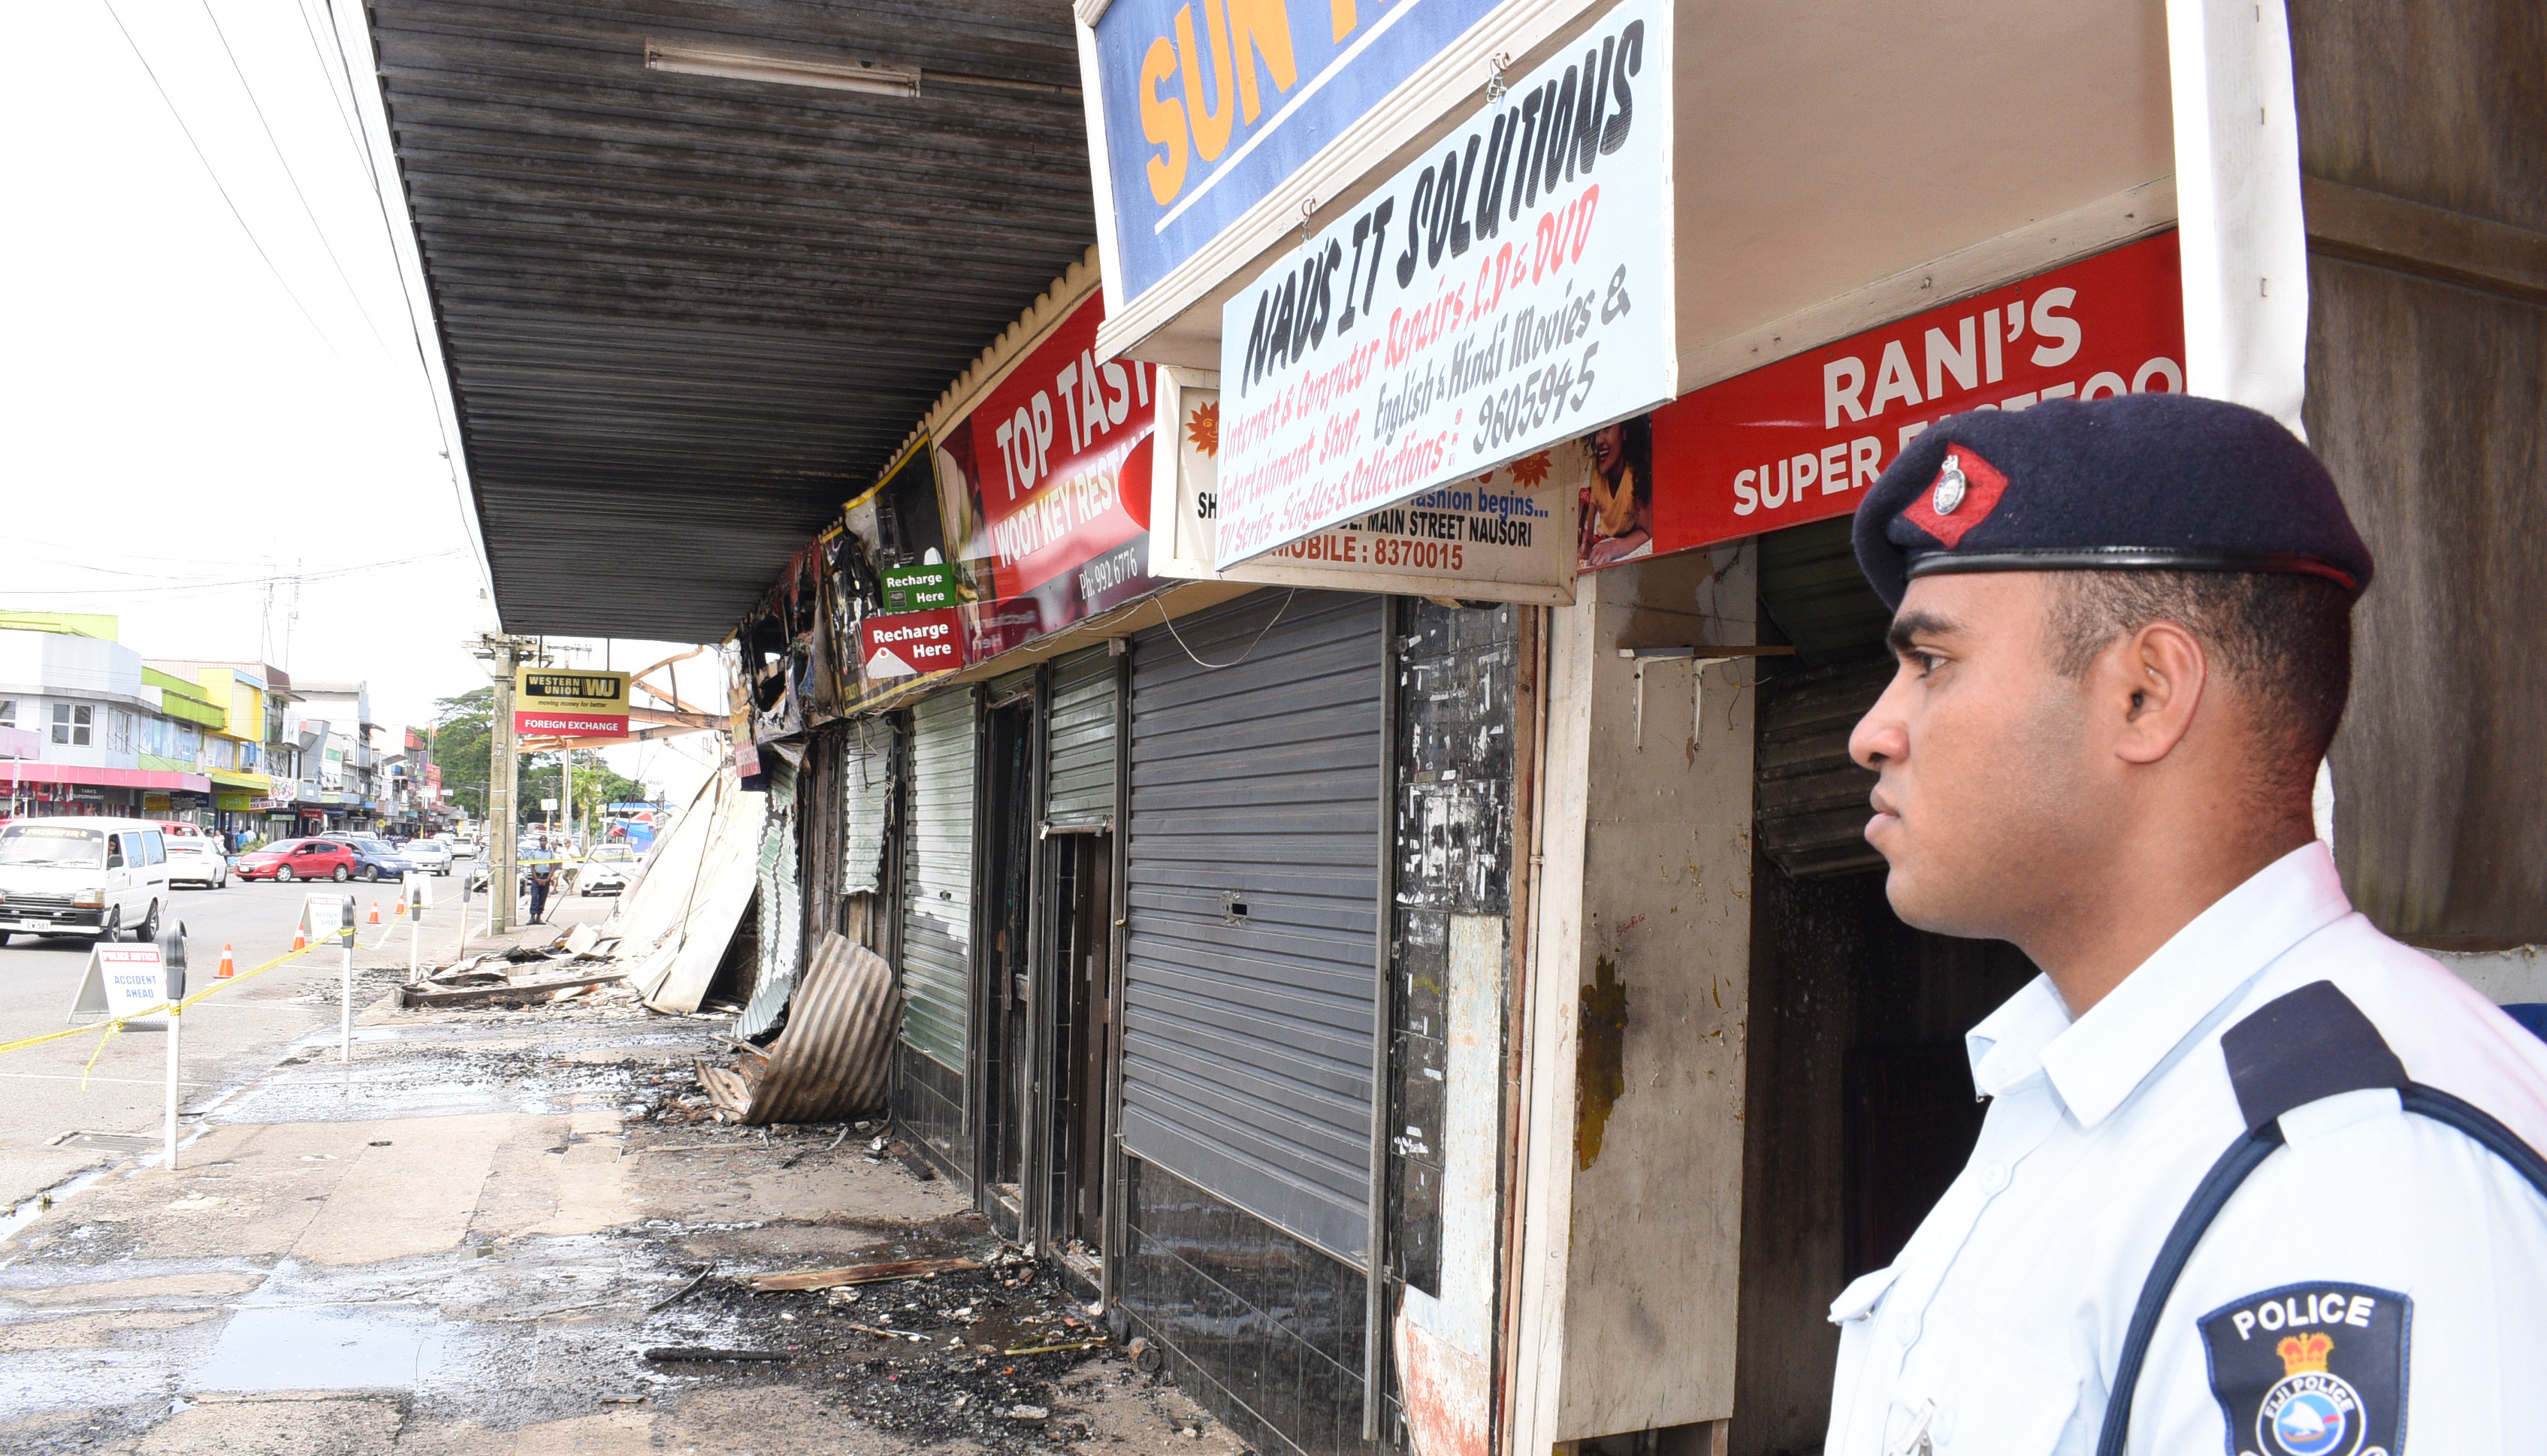 A Police officer keeps watch at the fire scene in Nausori Town on April 17, 2018. Photo: Ronald Kumar